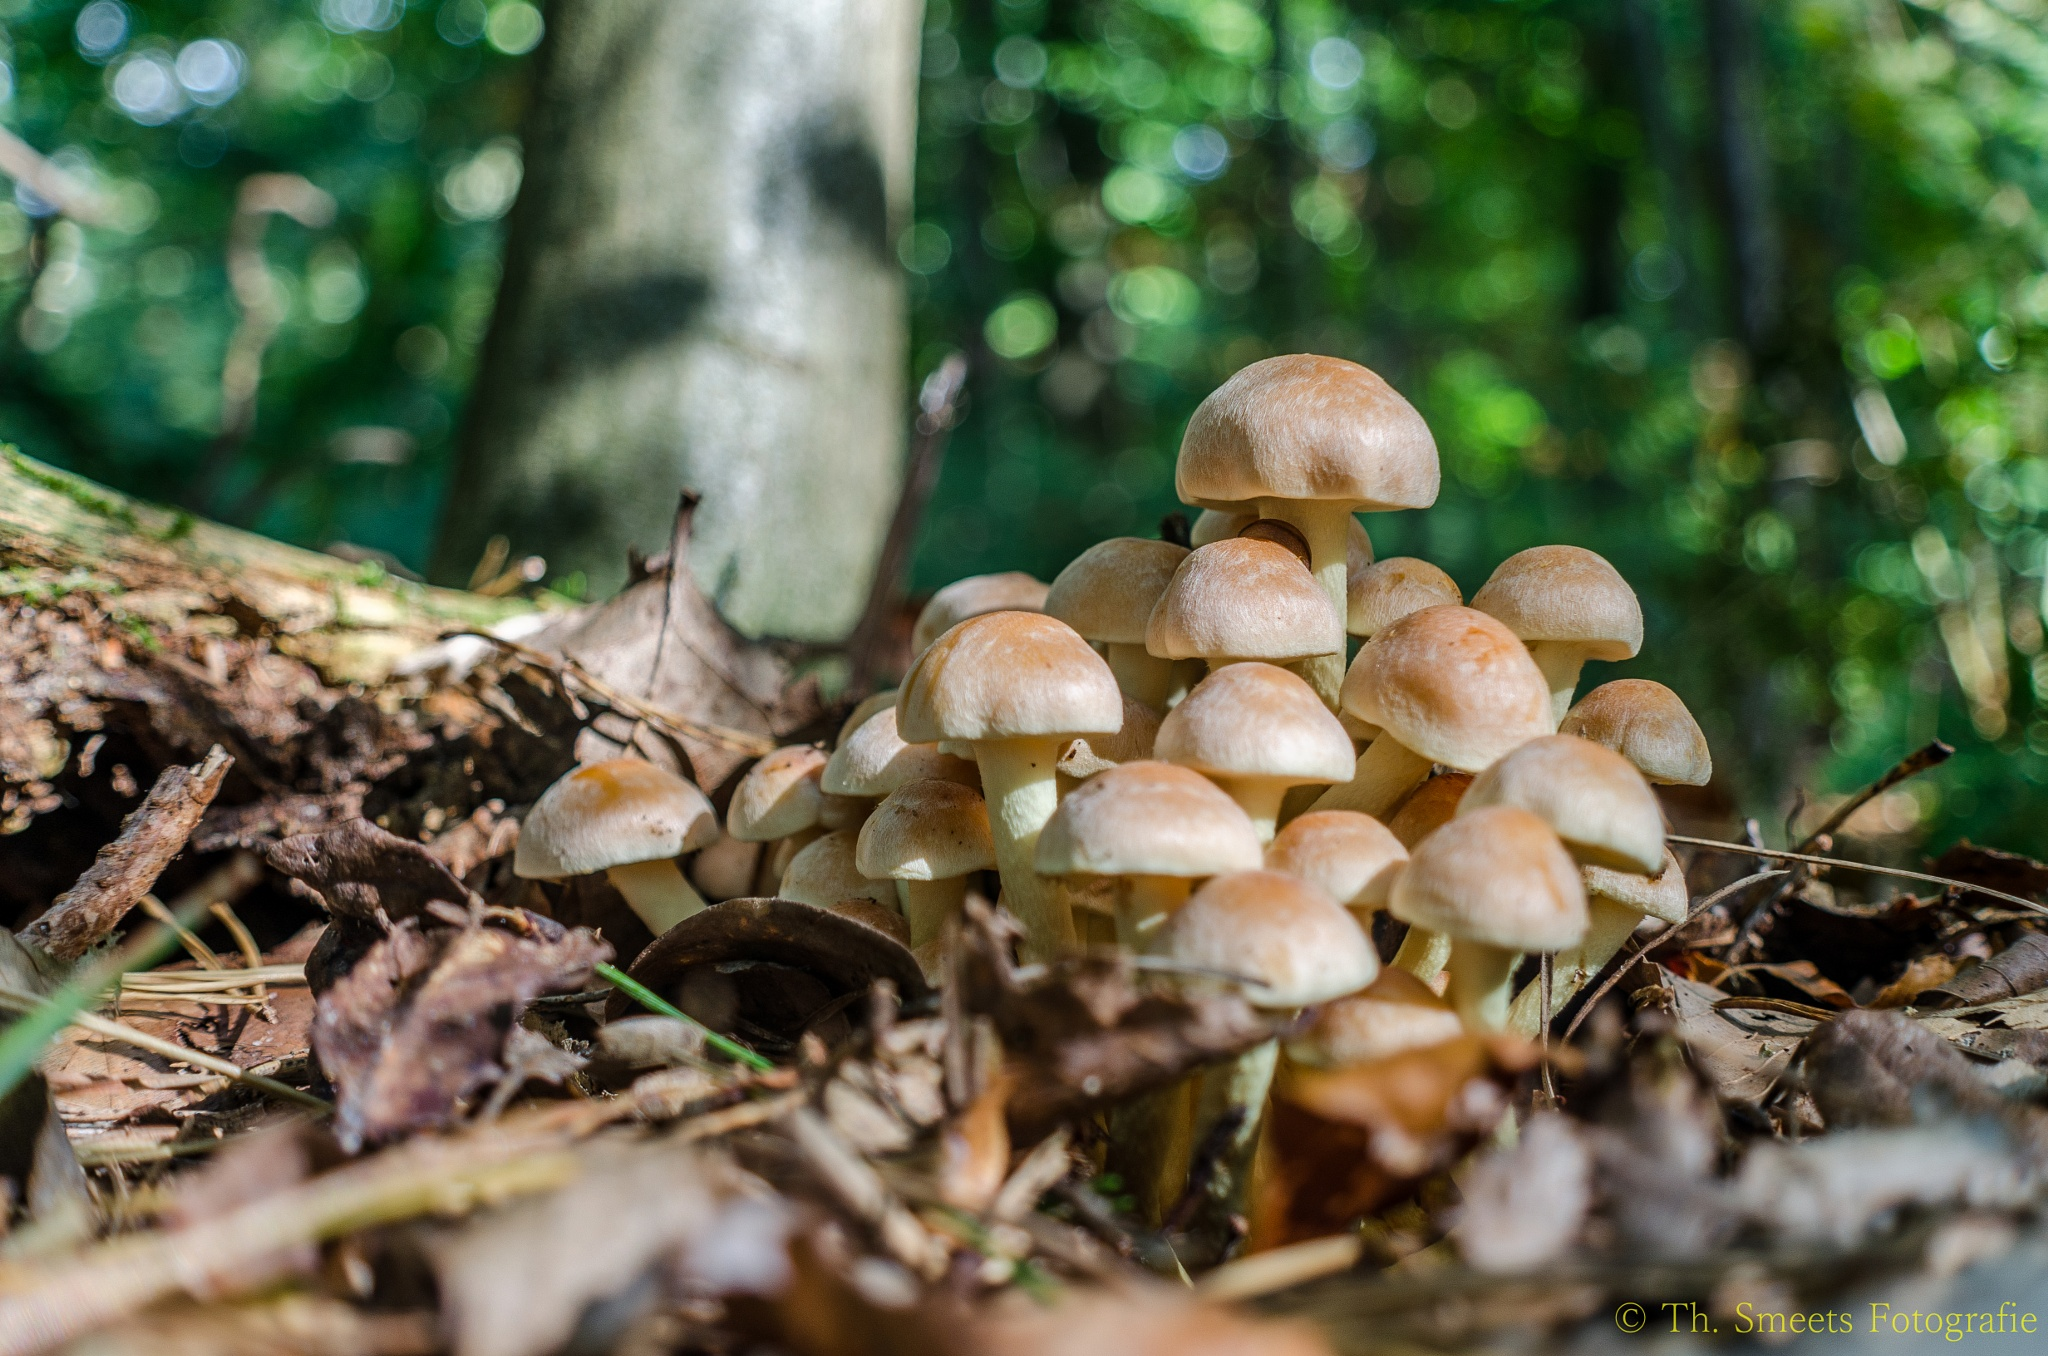 Mushrooms by Theo Smeets